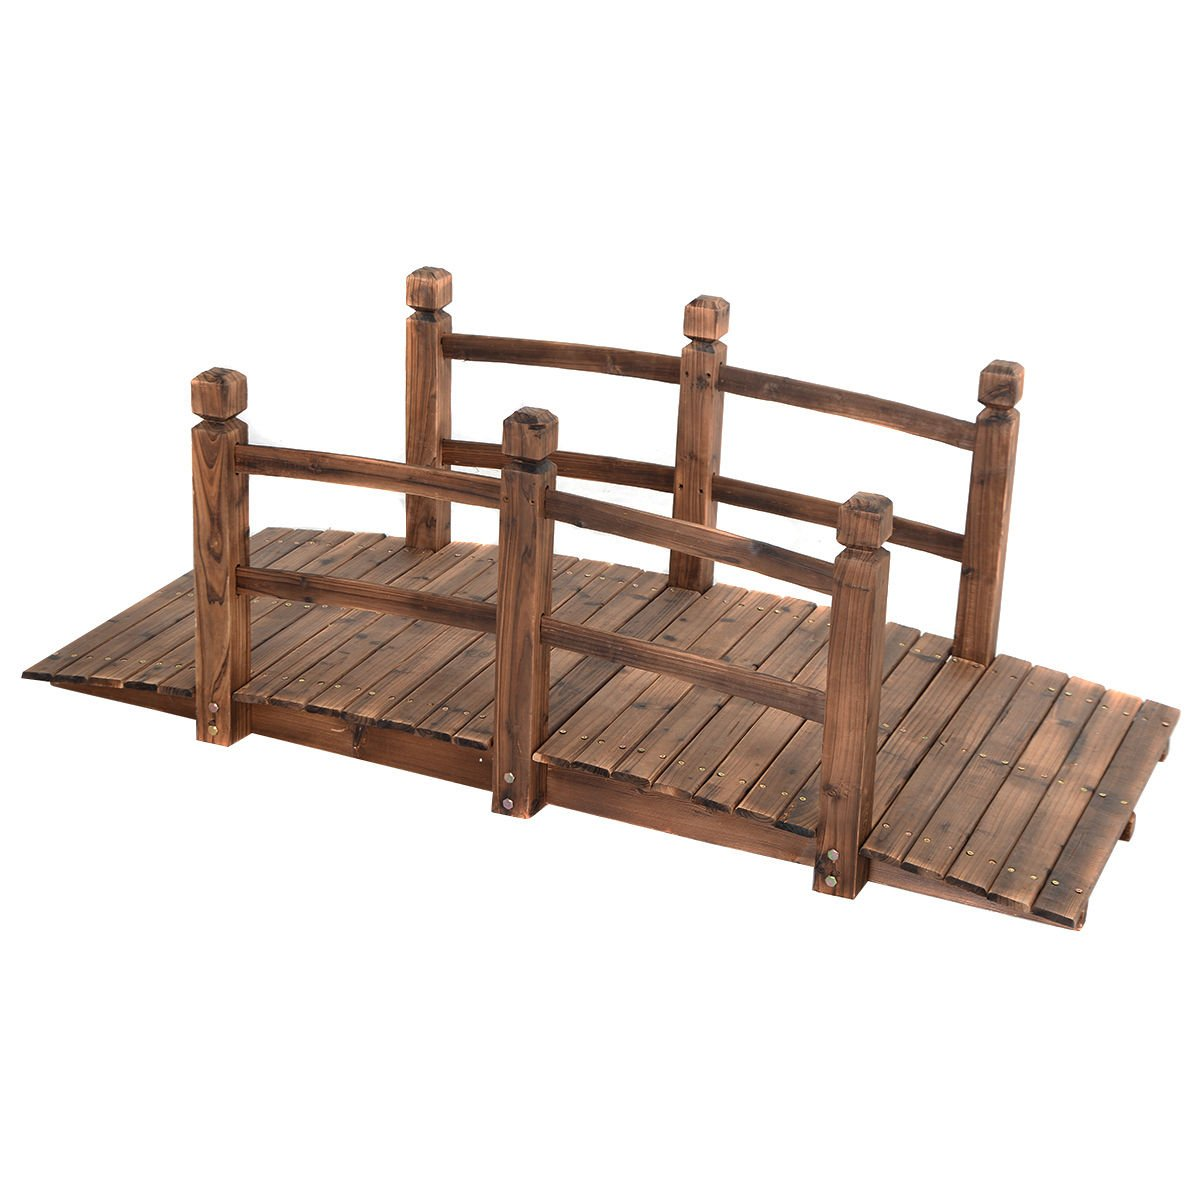 5' Wooden Garden Bridge Stained Finish And Solid Wooden Construction Great Addition To Pond Koi Ponds Creek Backyard Arch Archway Walkway Decorative Patio Outdoor Decorative Furniture Easy Assembly